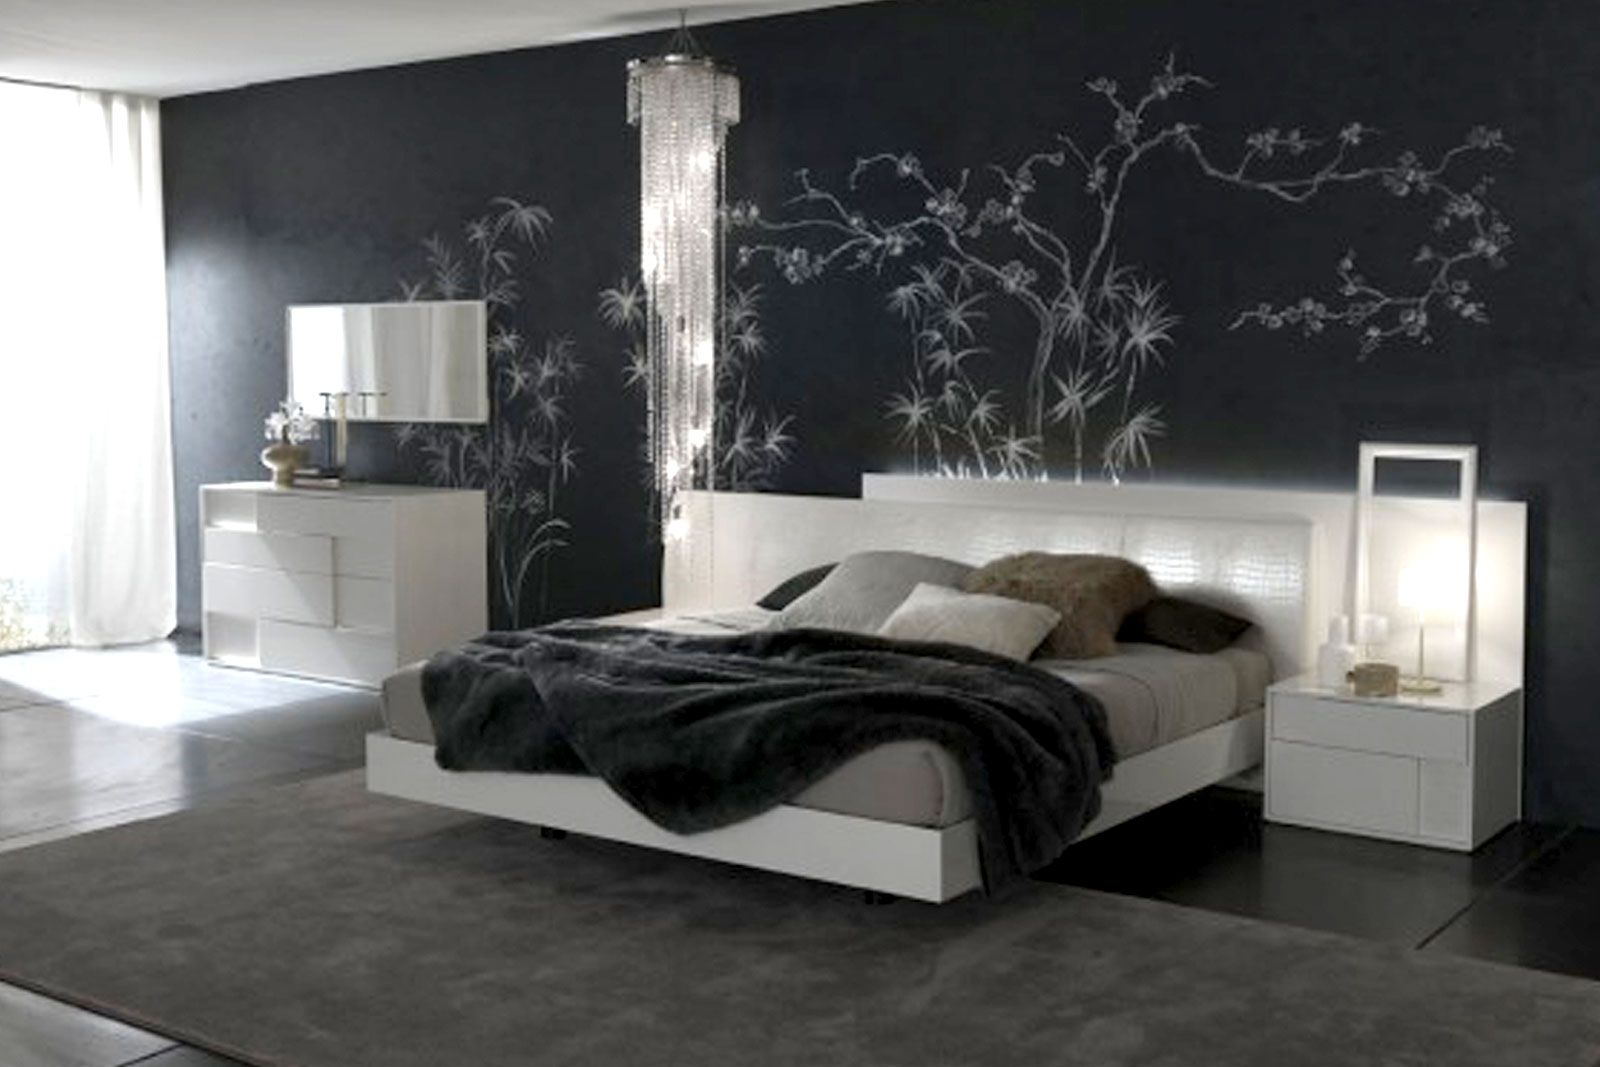 Interior design center inspiration - Deco chambre adulte design ...